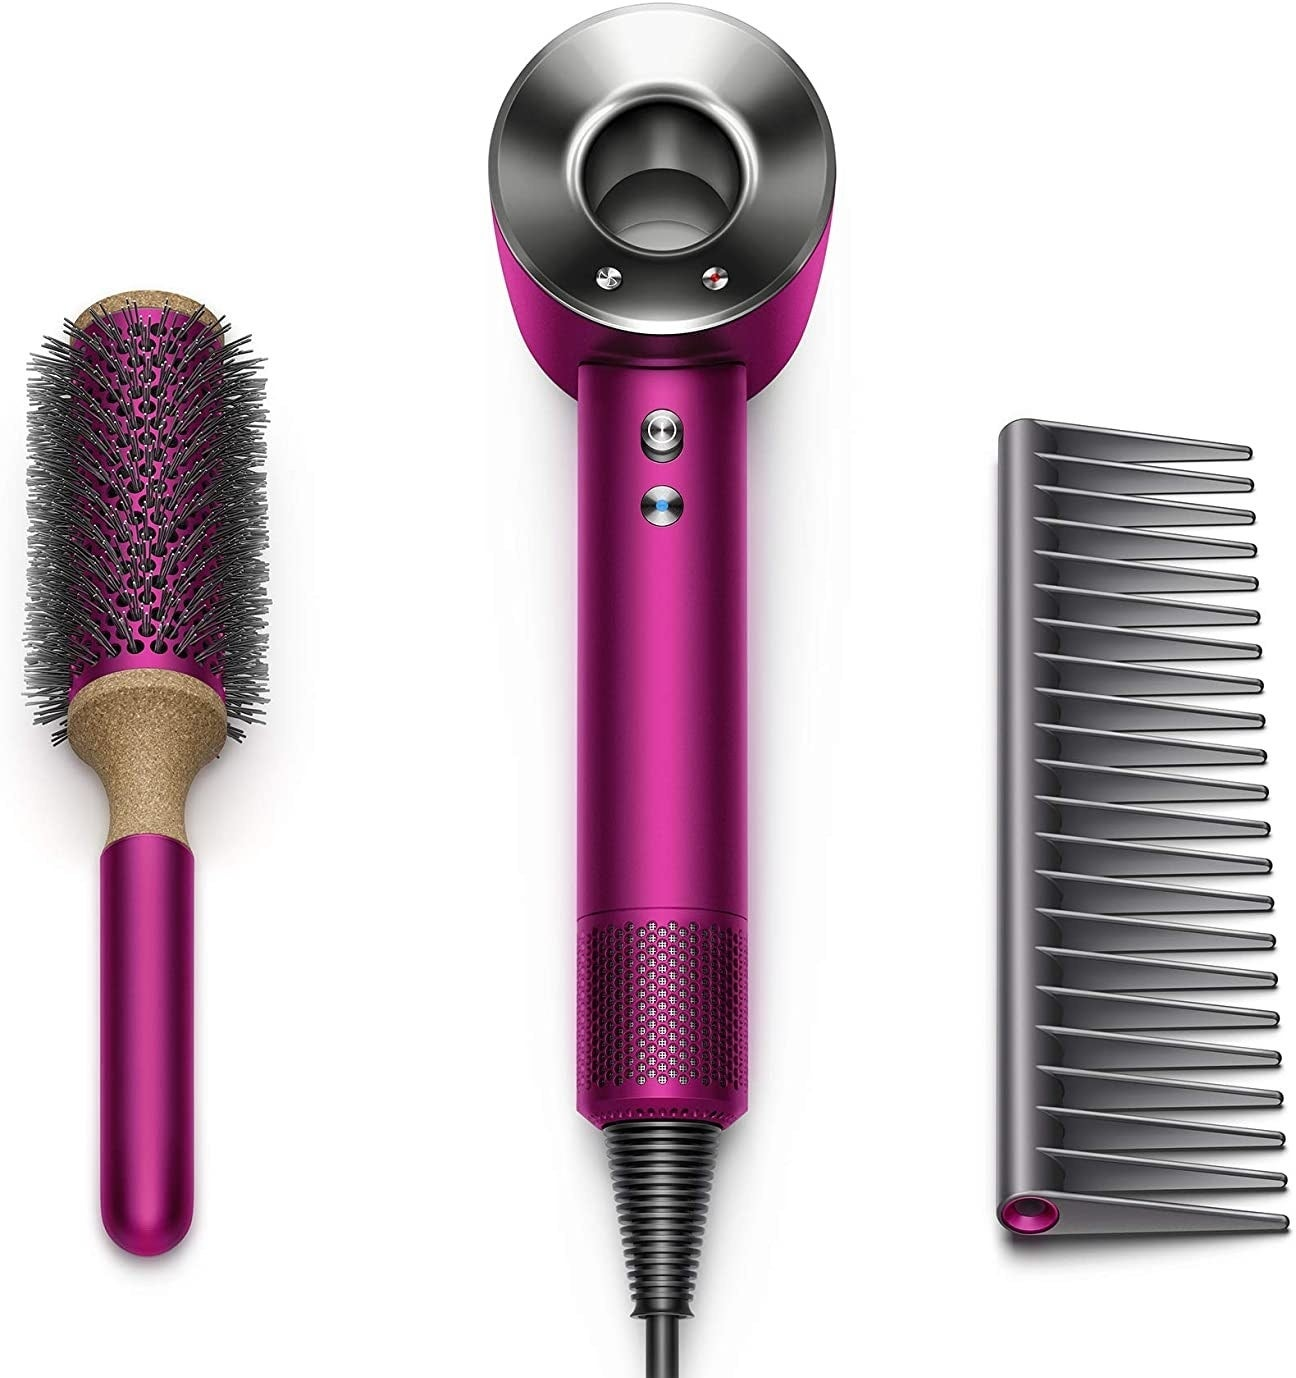 blow dryer, vented round brush, and comb